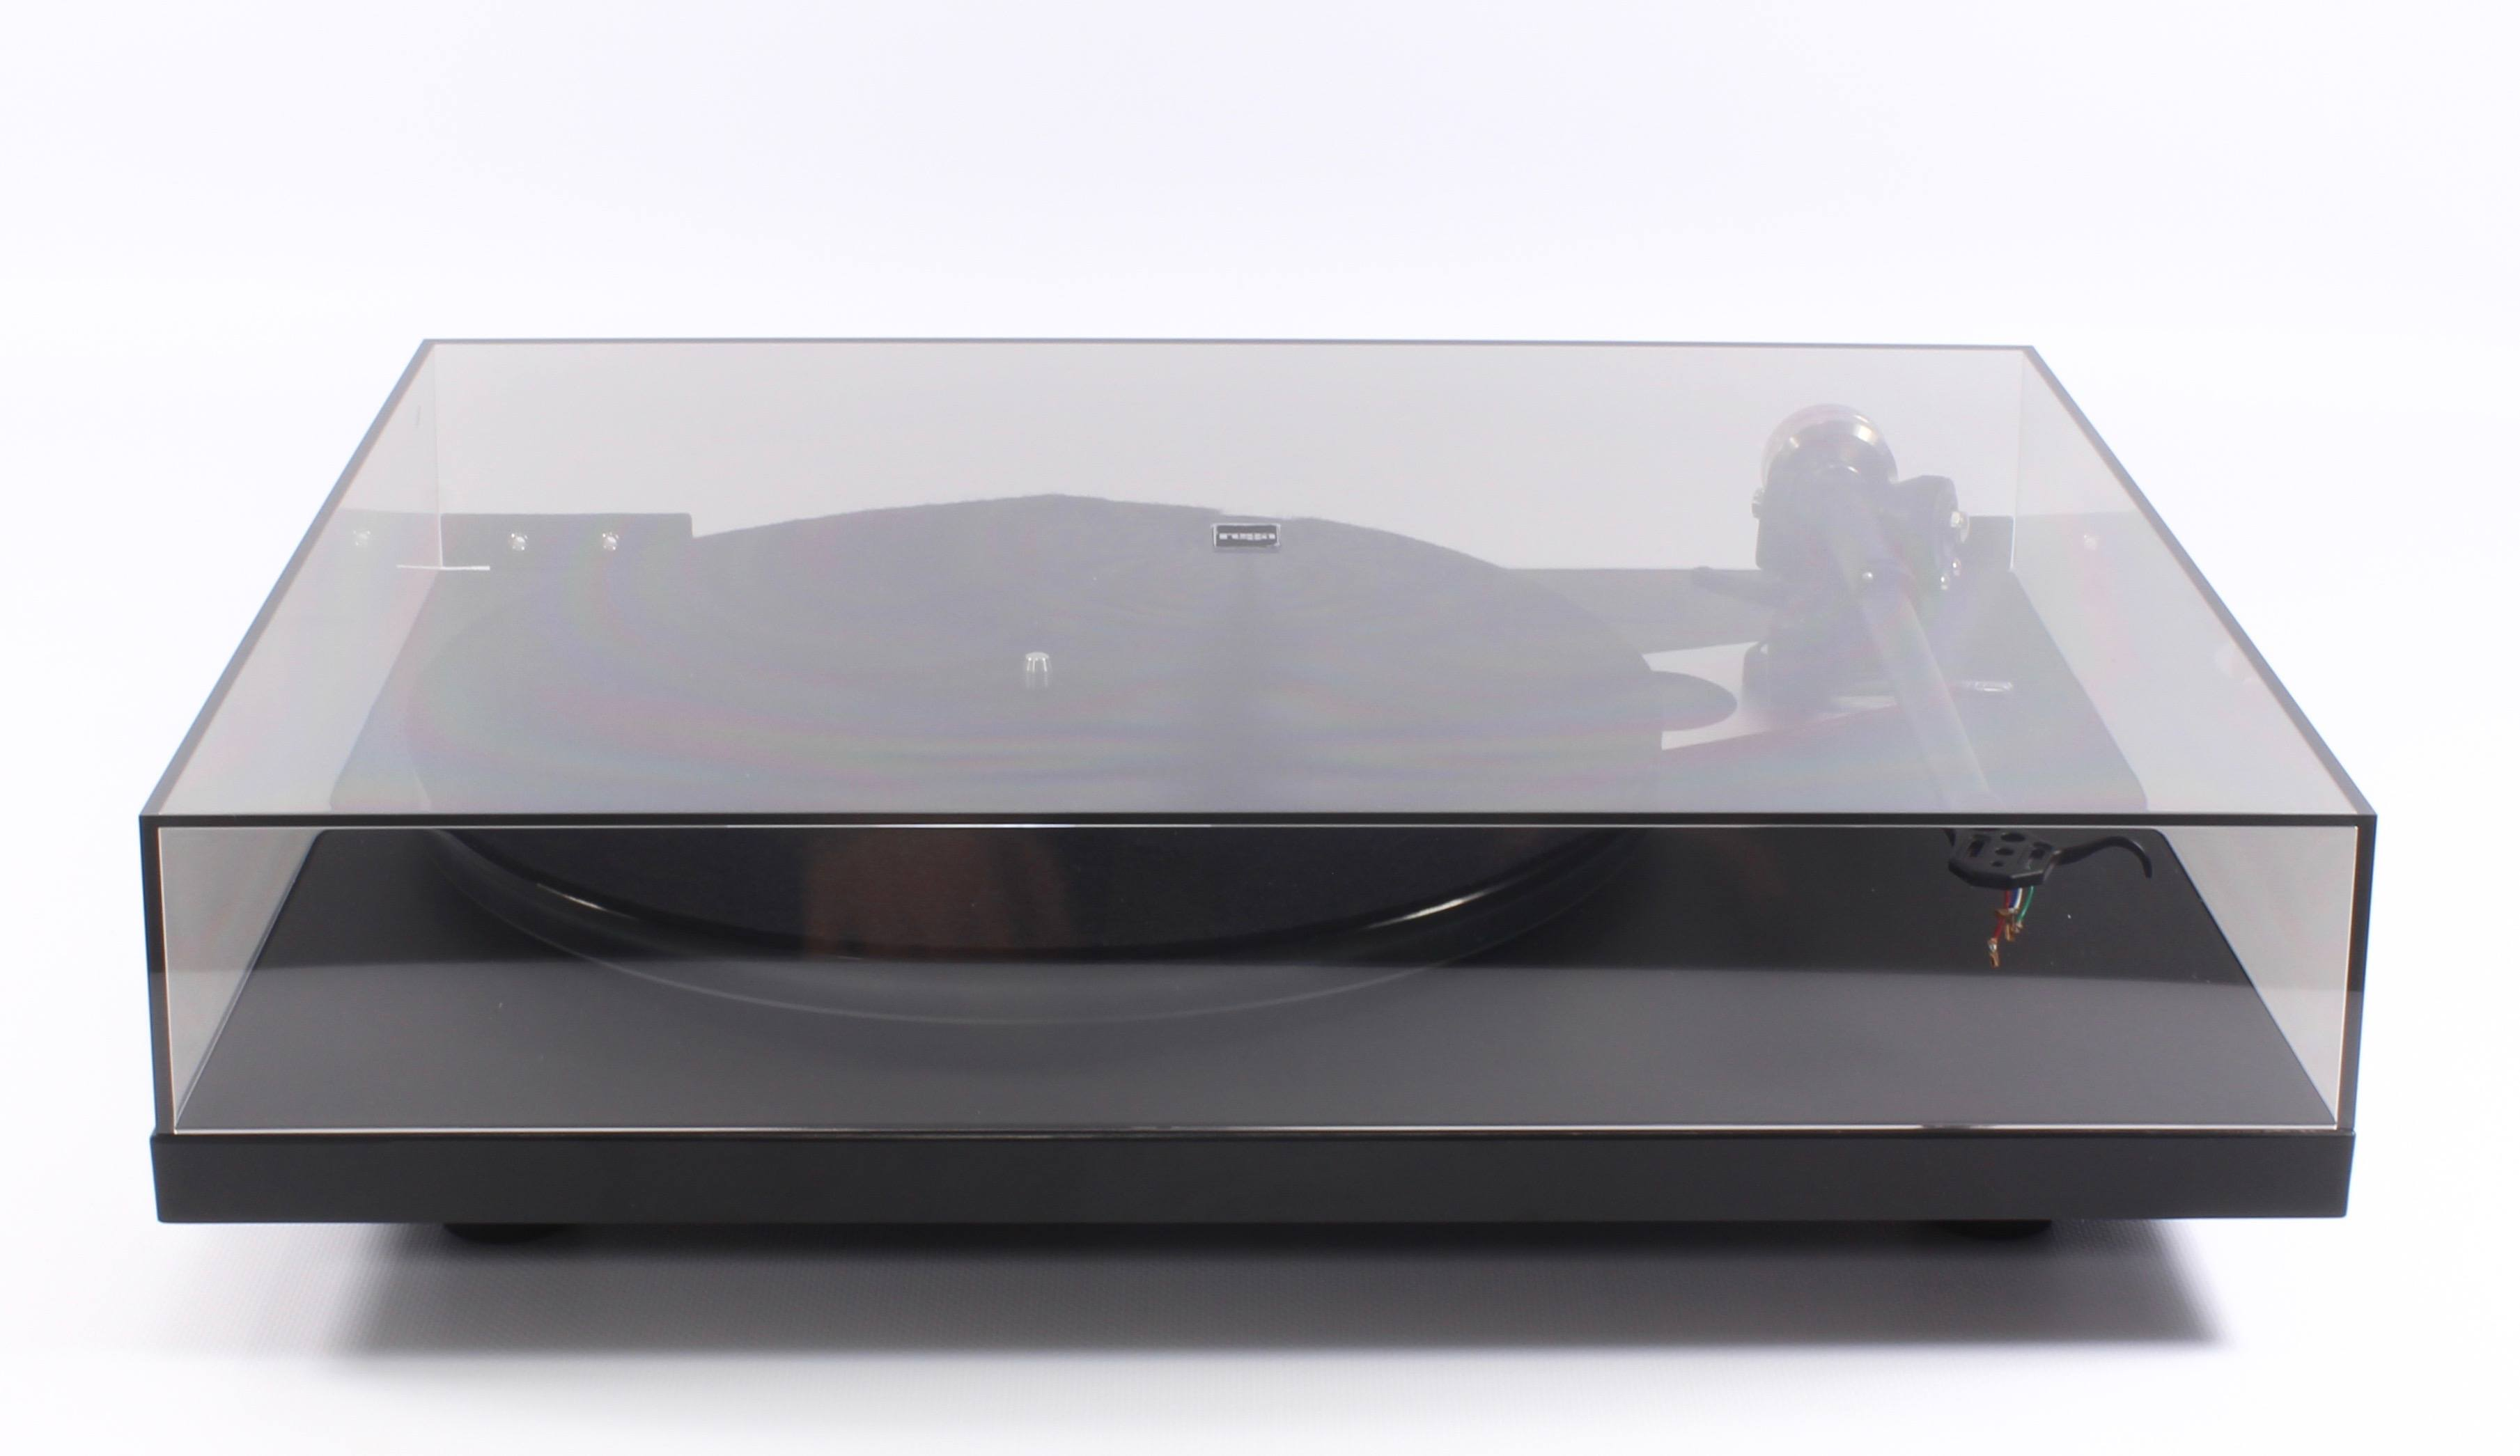 Rega Planar 6 : accessories and dust cover